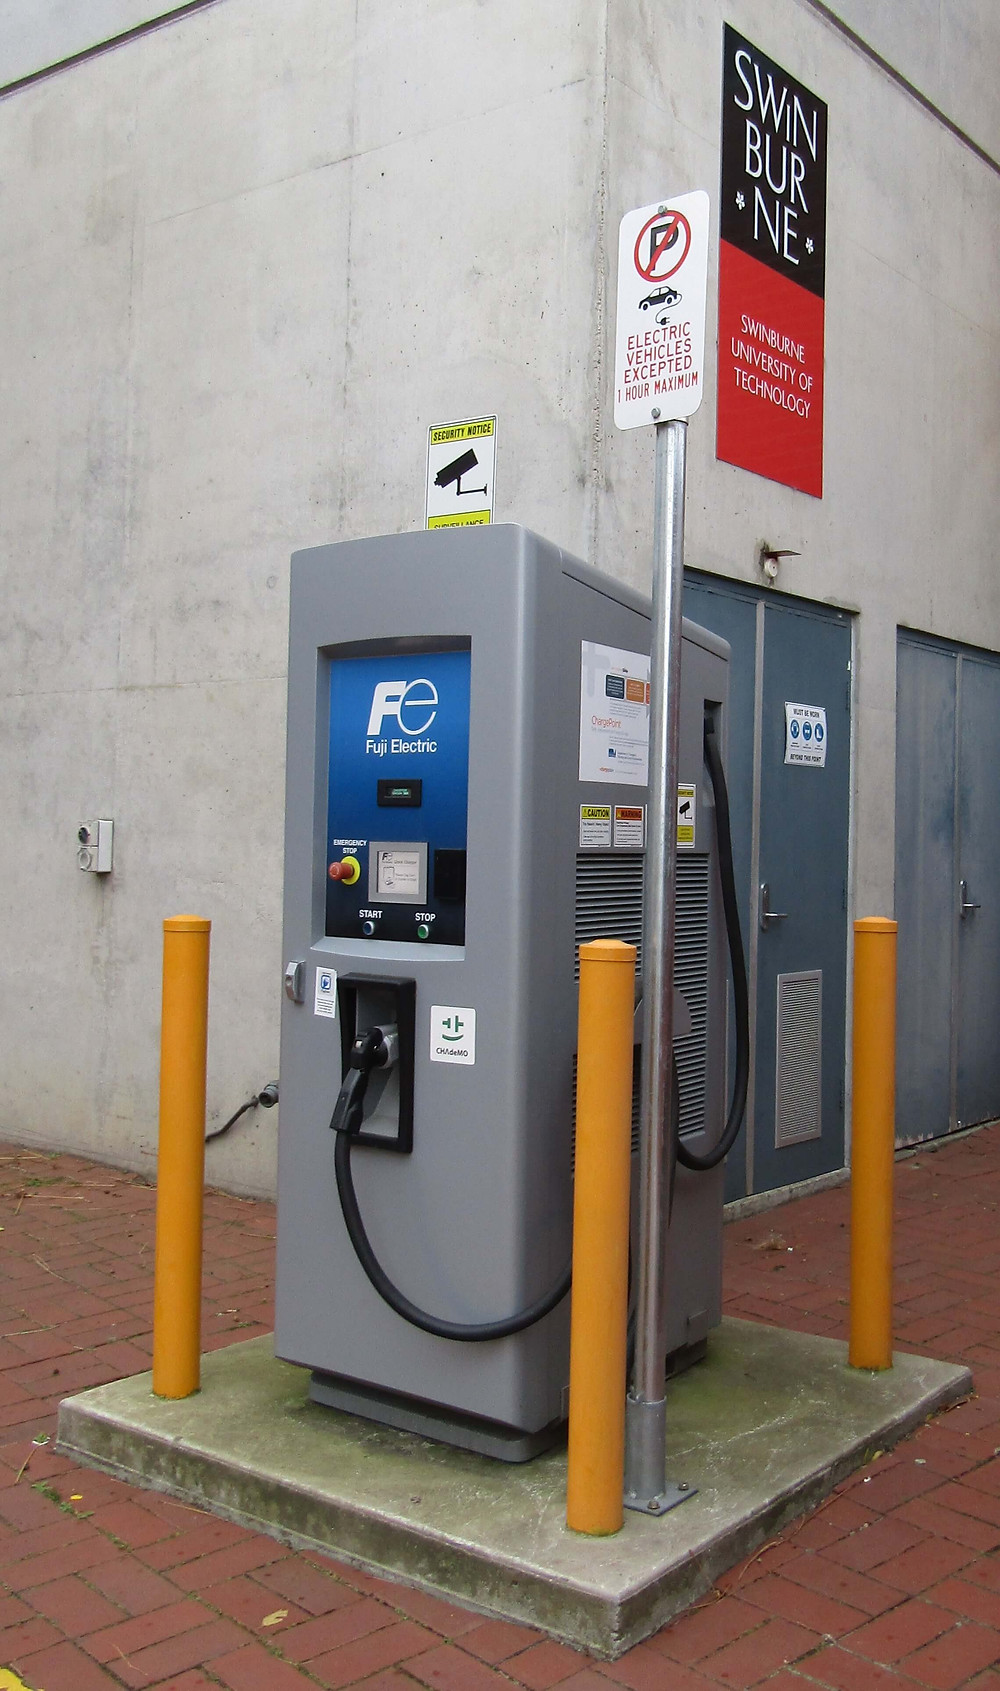 Hawthorn's only publicly available electric car charging station at 20 Williams Street in Swinburne University.